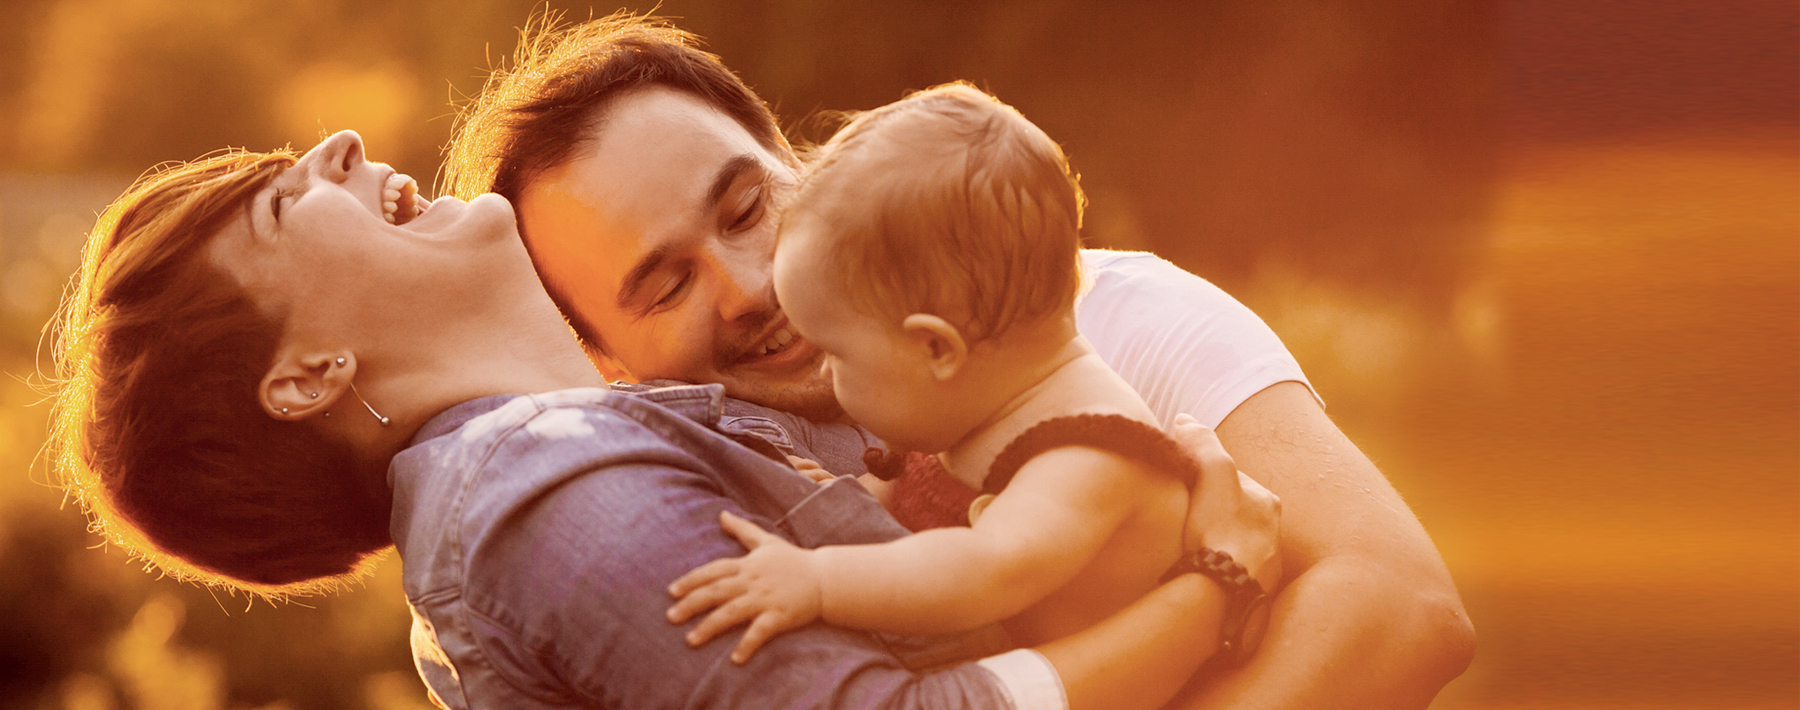 Maintaining Your Marriage When You Become Parents inside